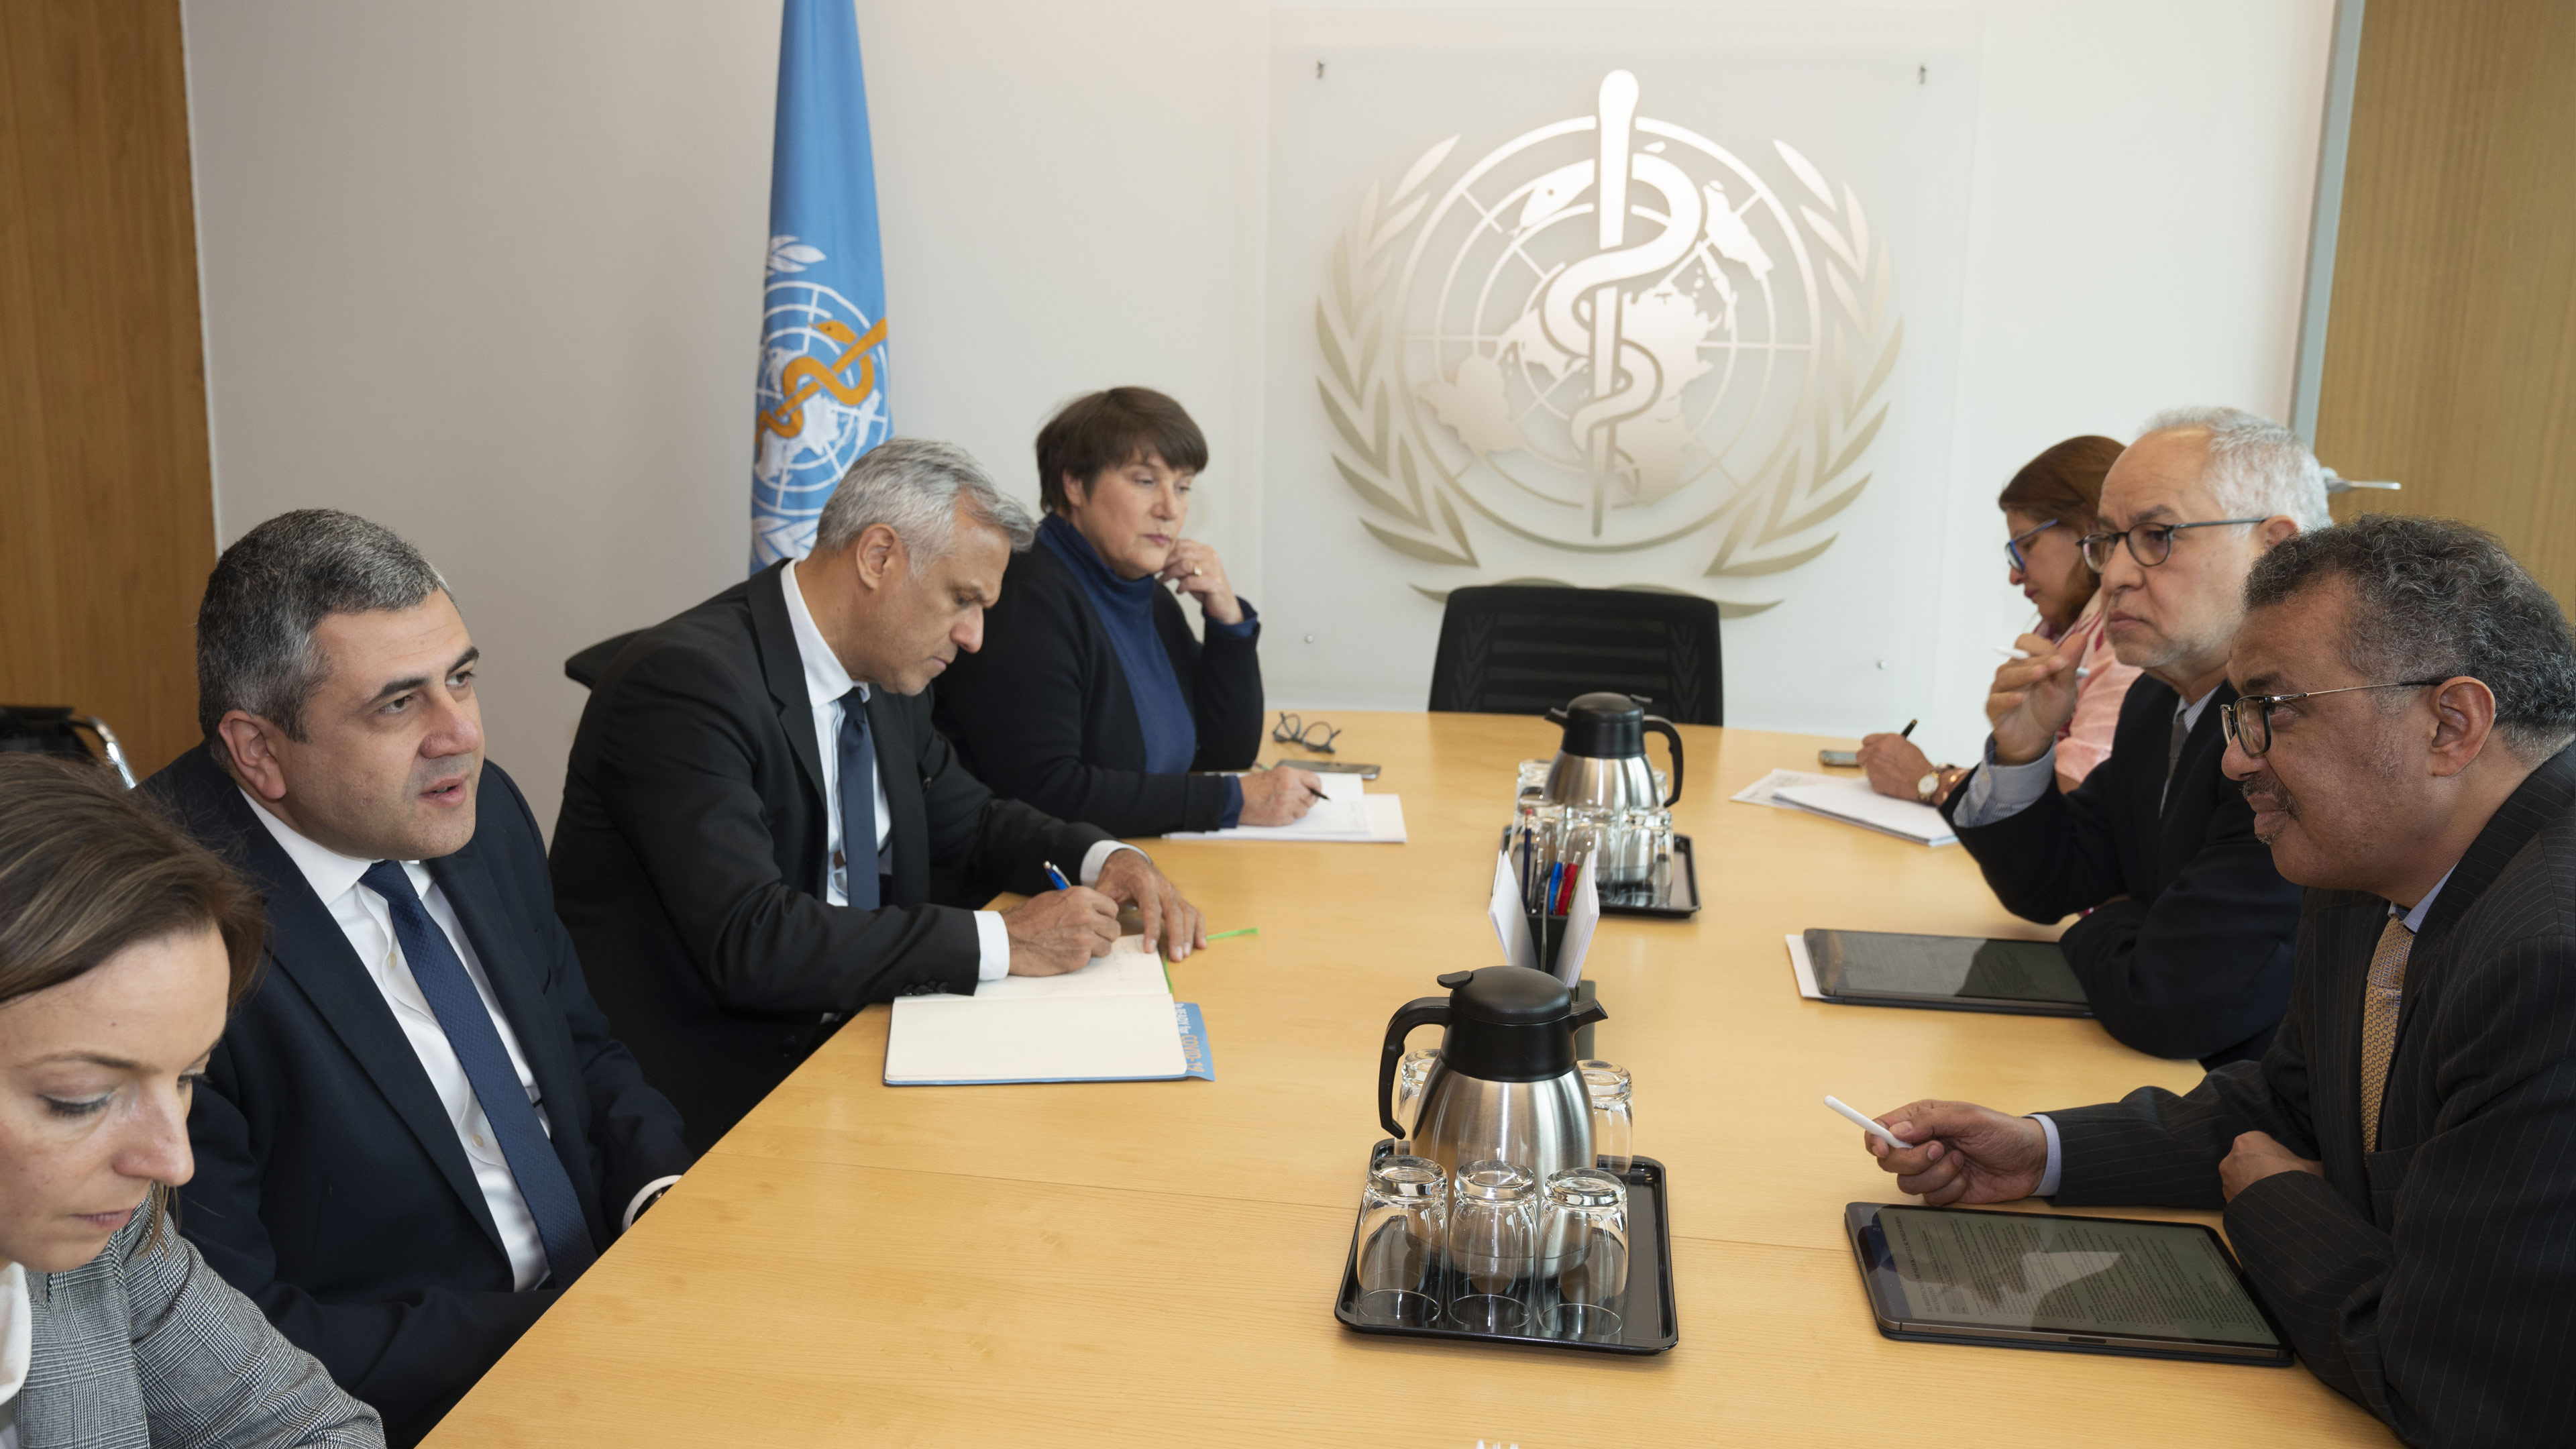 UNWTO and WHO Agree to Further Cooperation in COVID-19 Response